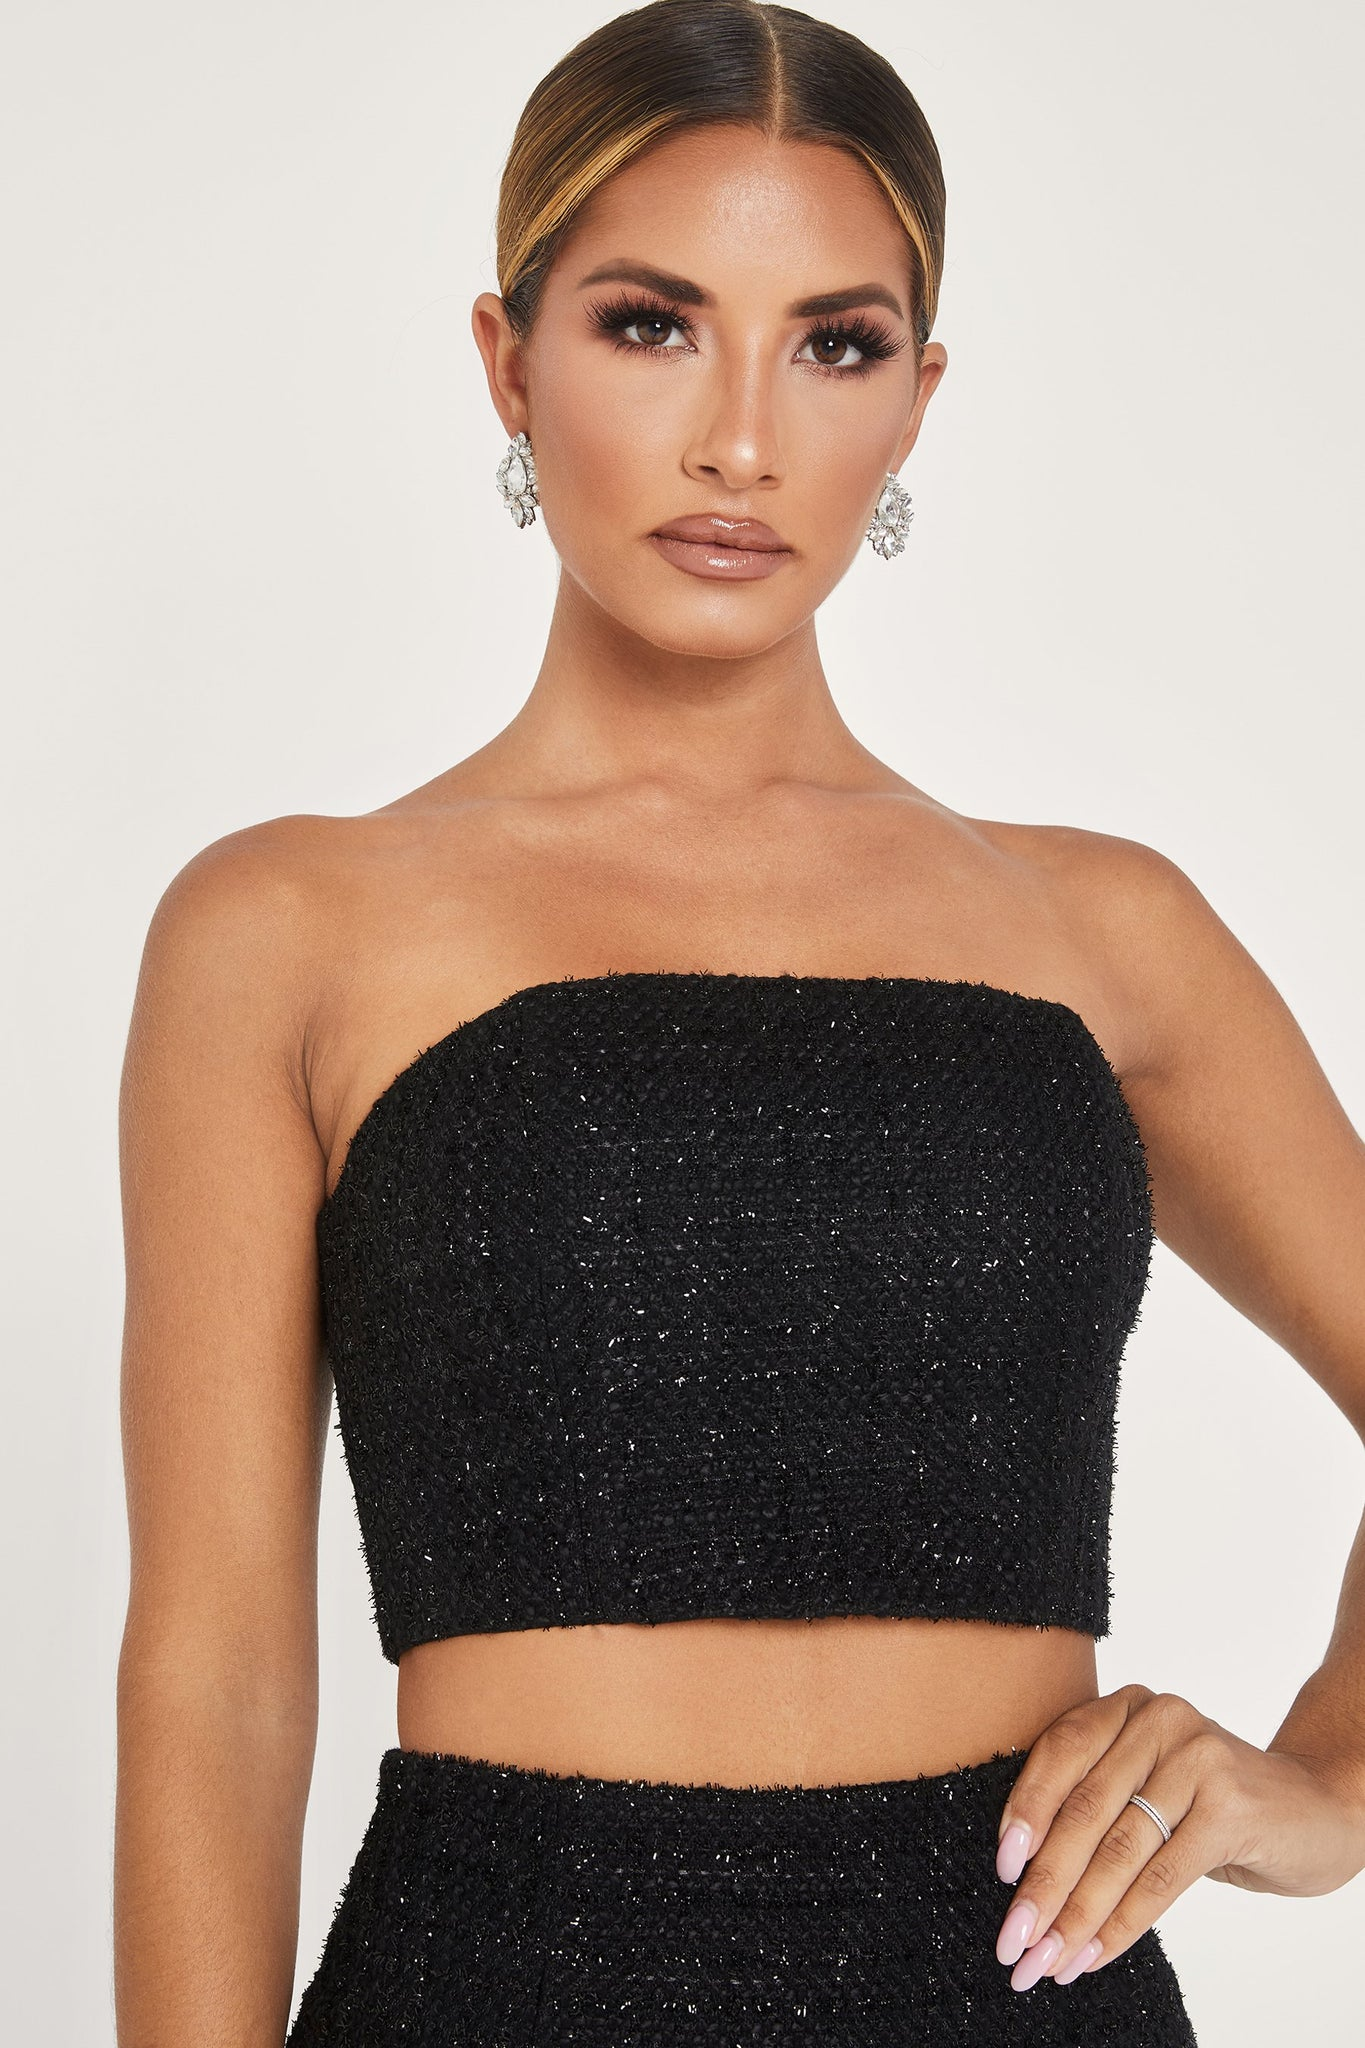 Karl Tweed Strapless Crop Top - Black - MESHKI